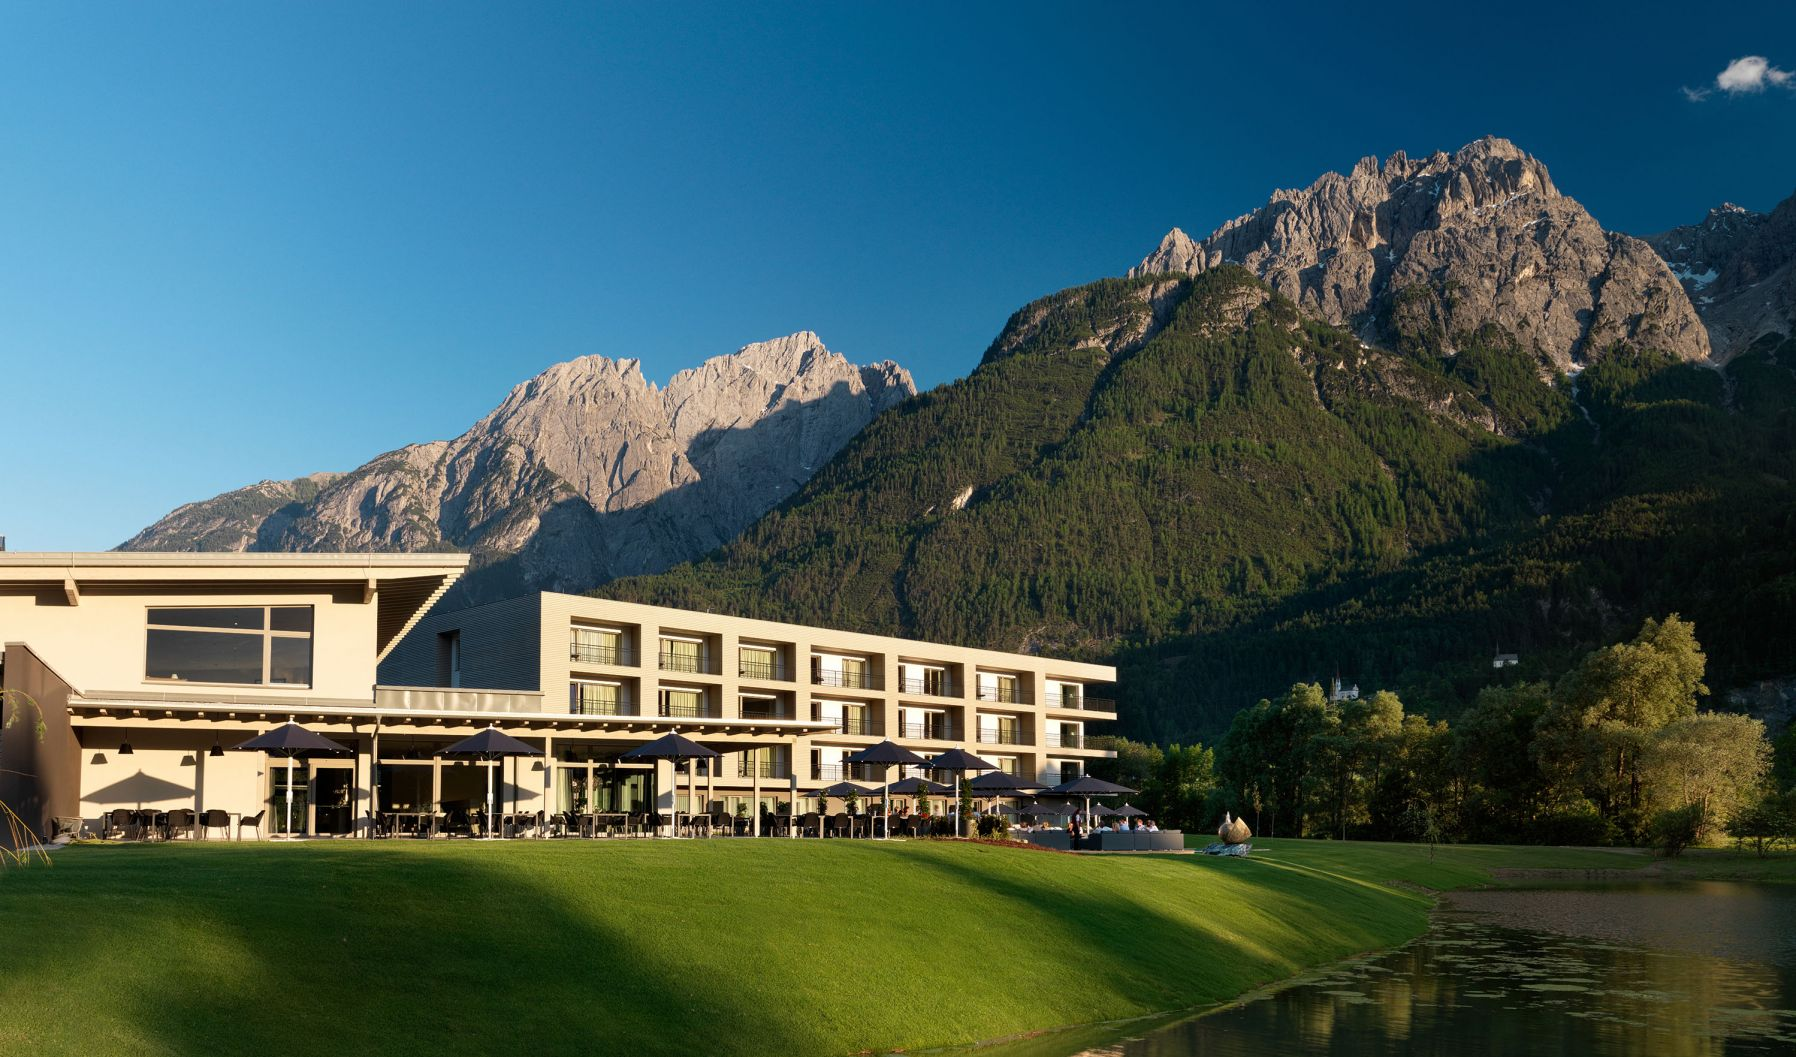 Dolomitengolf Suites Luxury Hotel South Tyrol